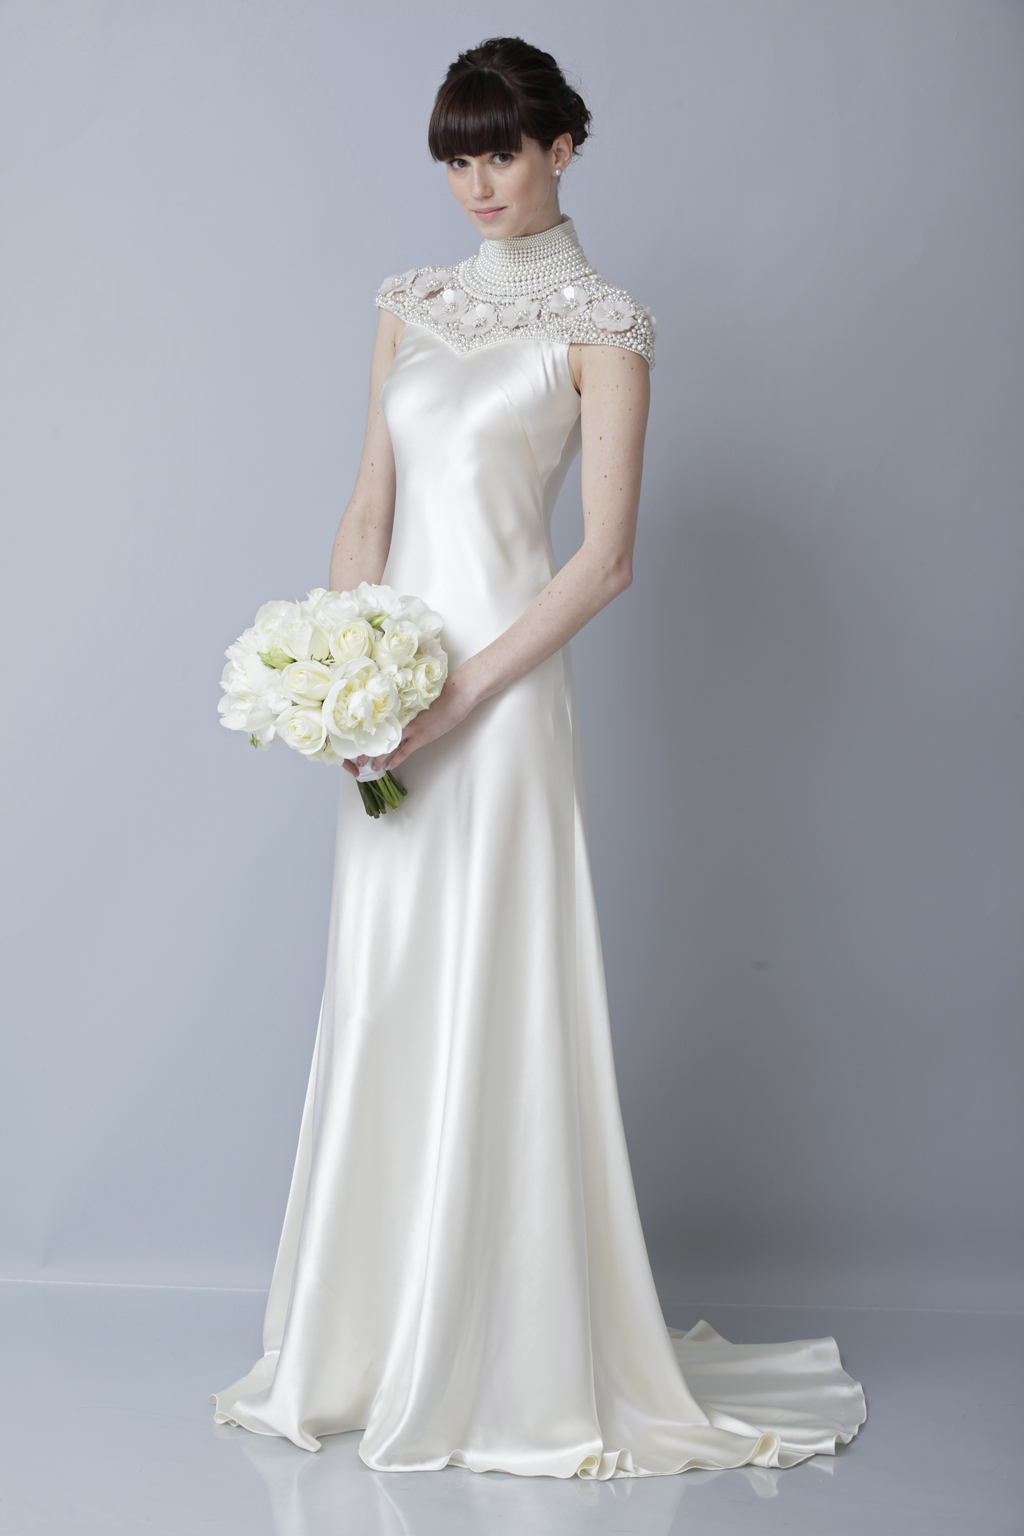 Theia-white-collection-wedding-dress-spring-2013-bridal-gown-890017.full